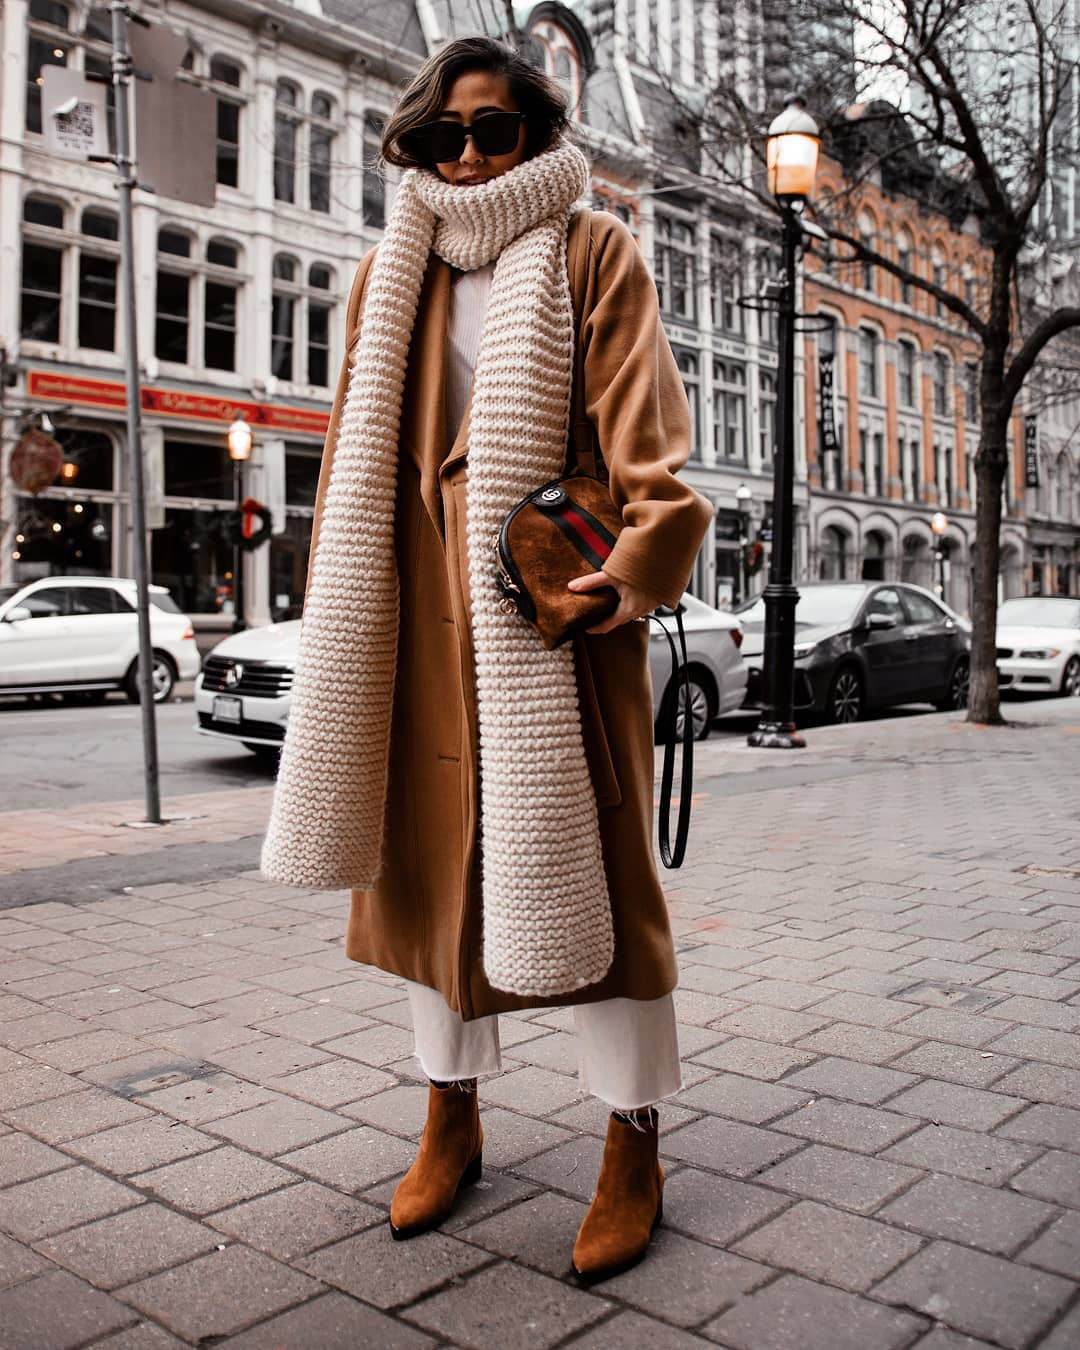 bag gucci bag brown bag leather bag oversized coat brown coat brown boots white jeans cropped jeans knitted scarf suede bag ankle boots straight jeans long coat top